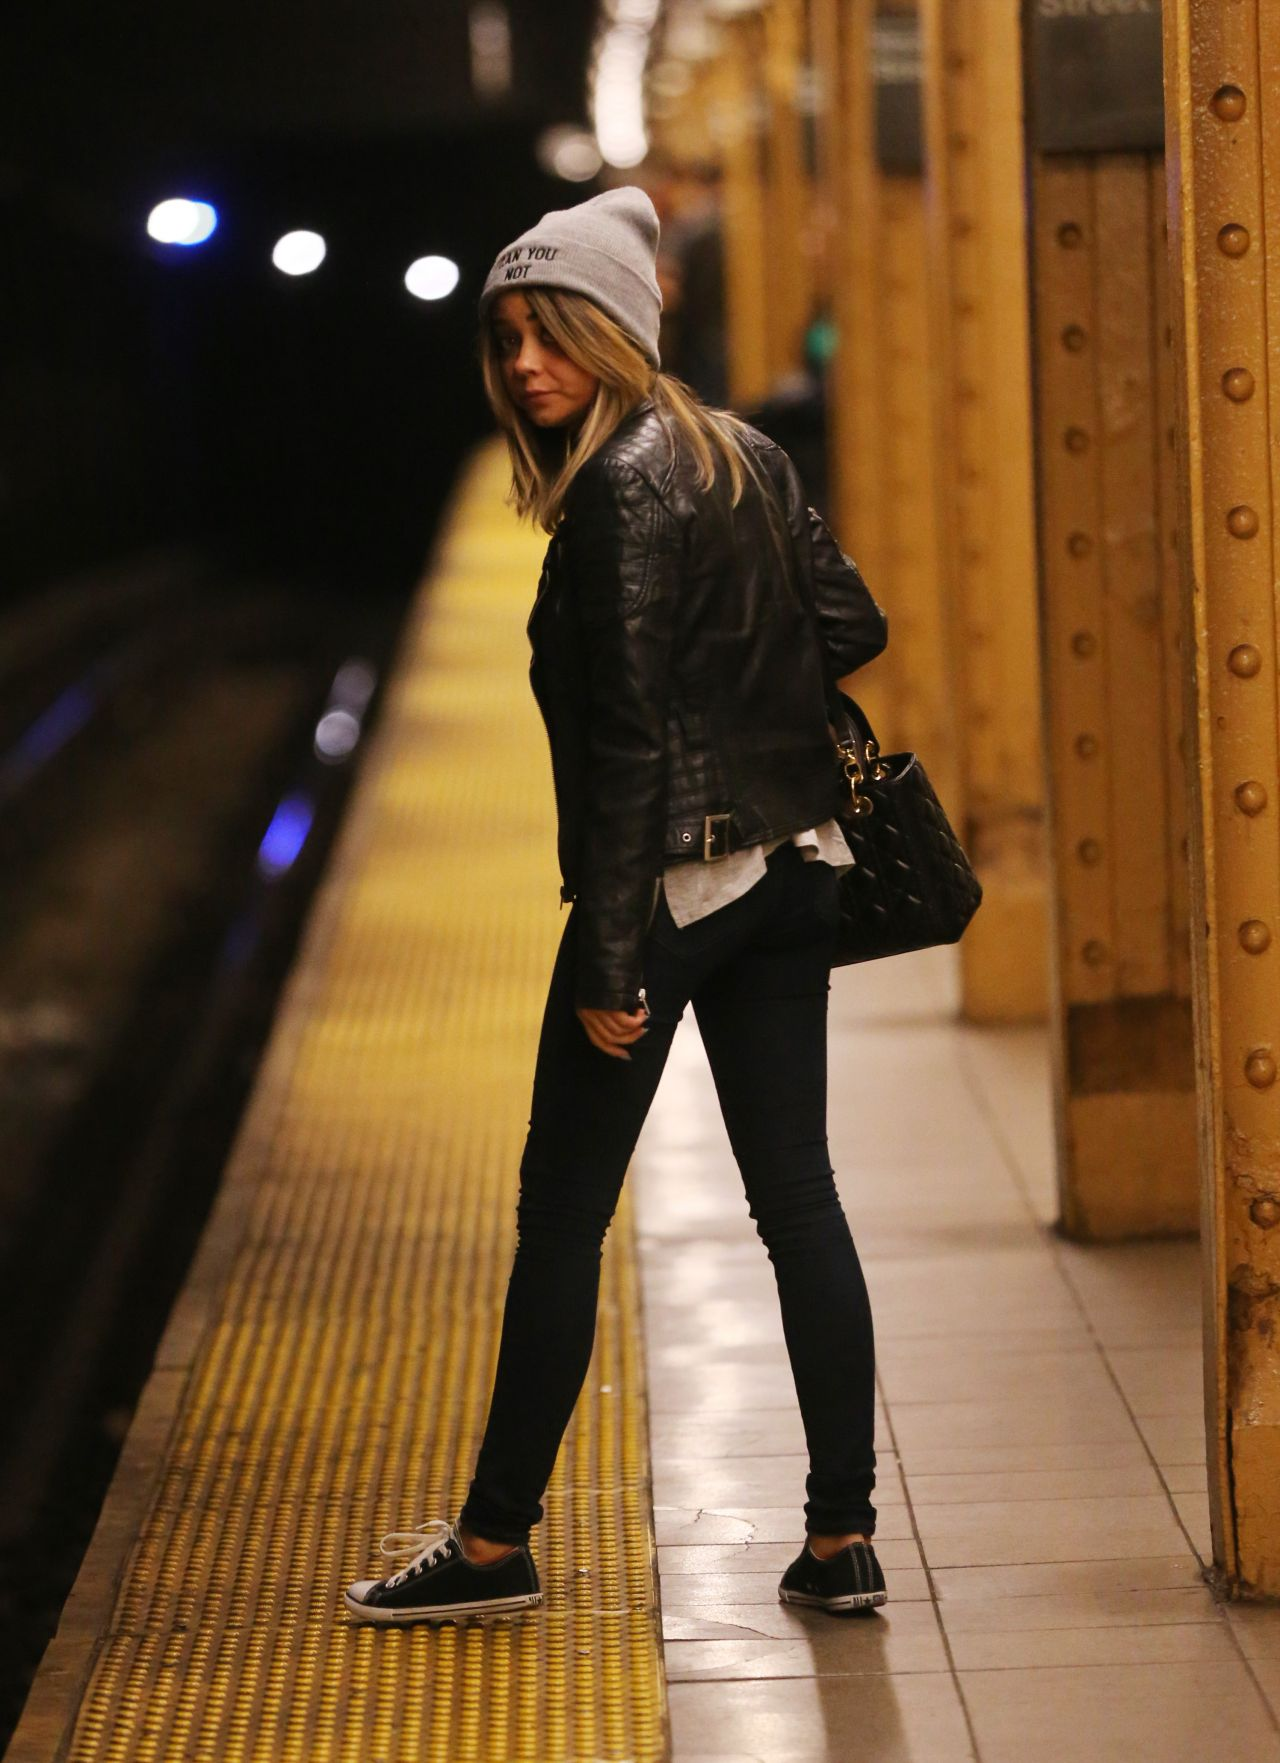 Sarah Hyland Taking the Subway in New York City - April 2014